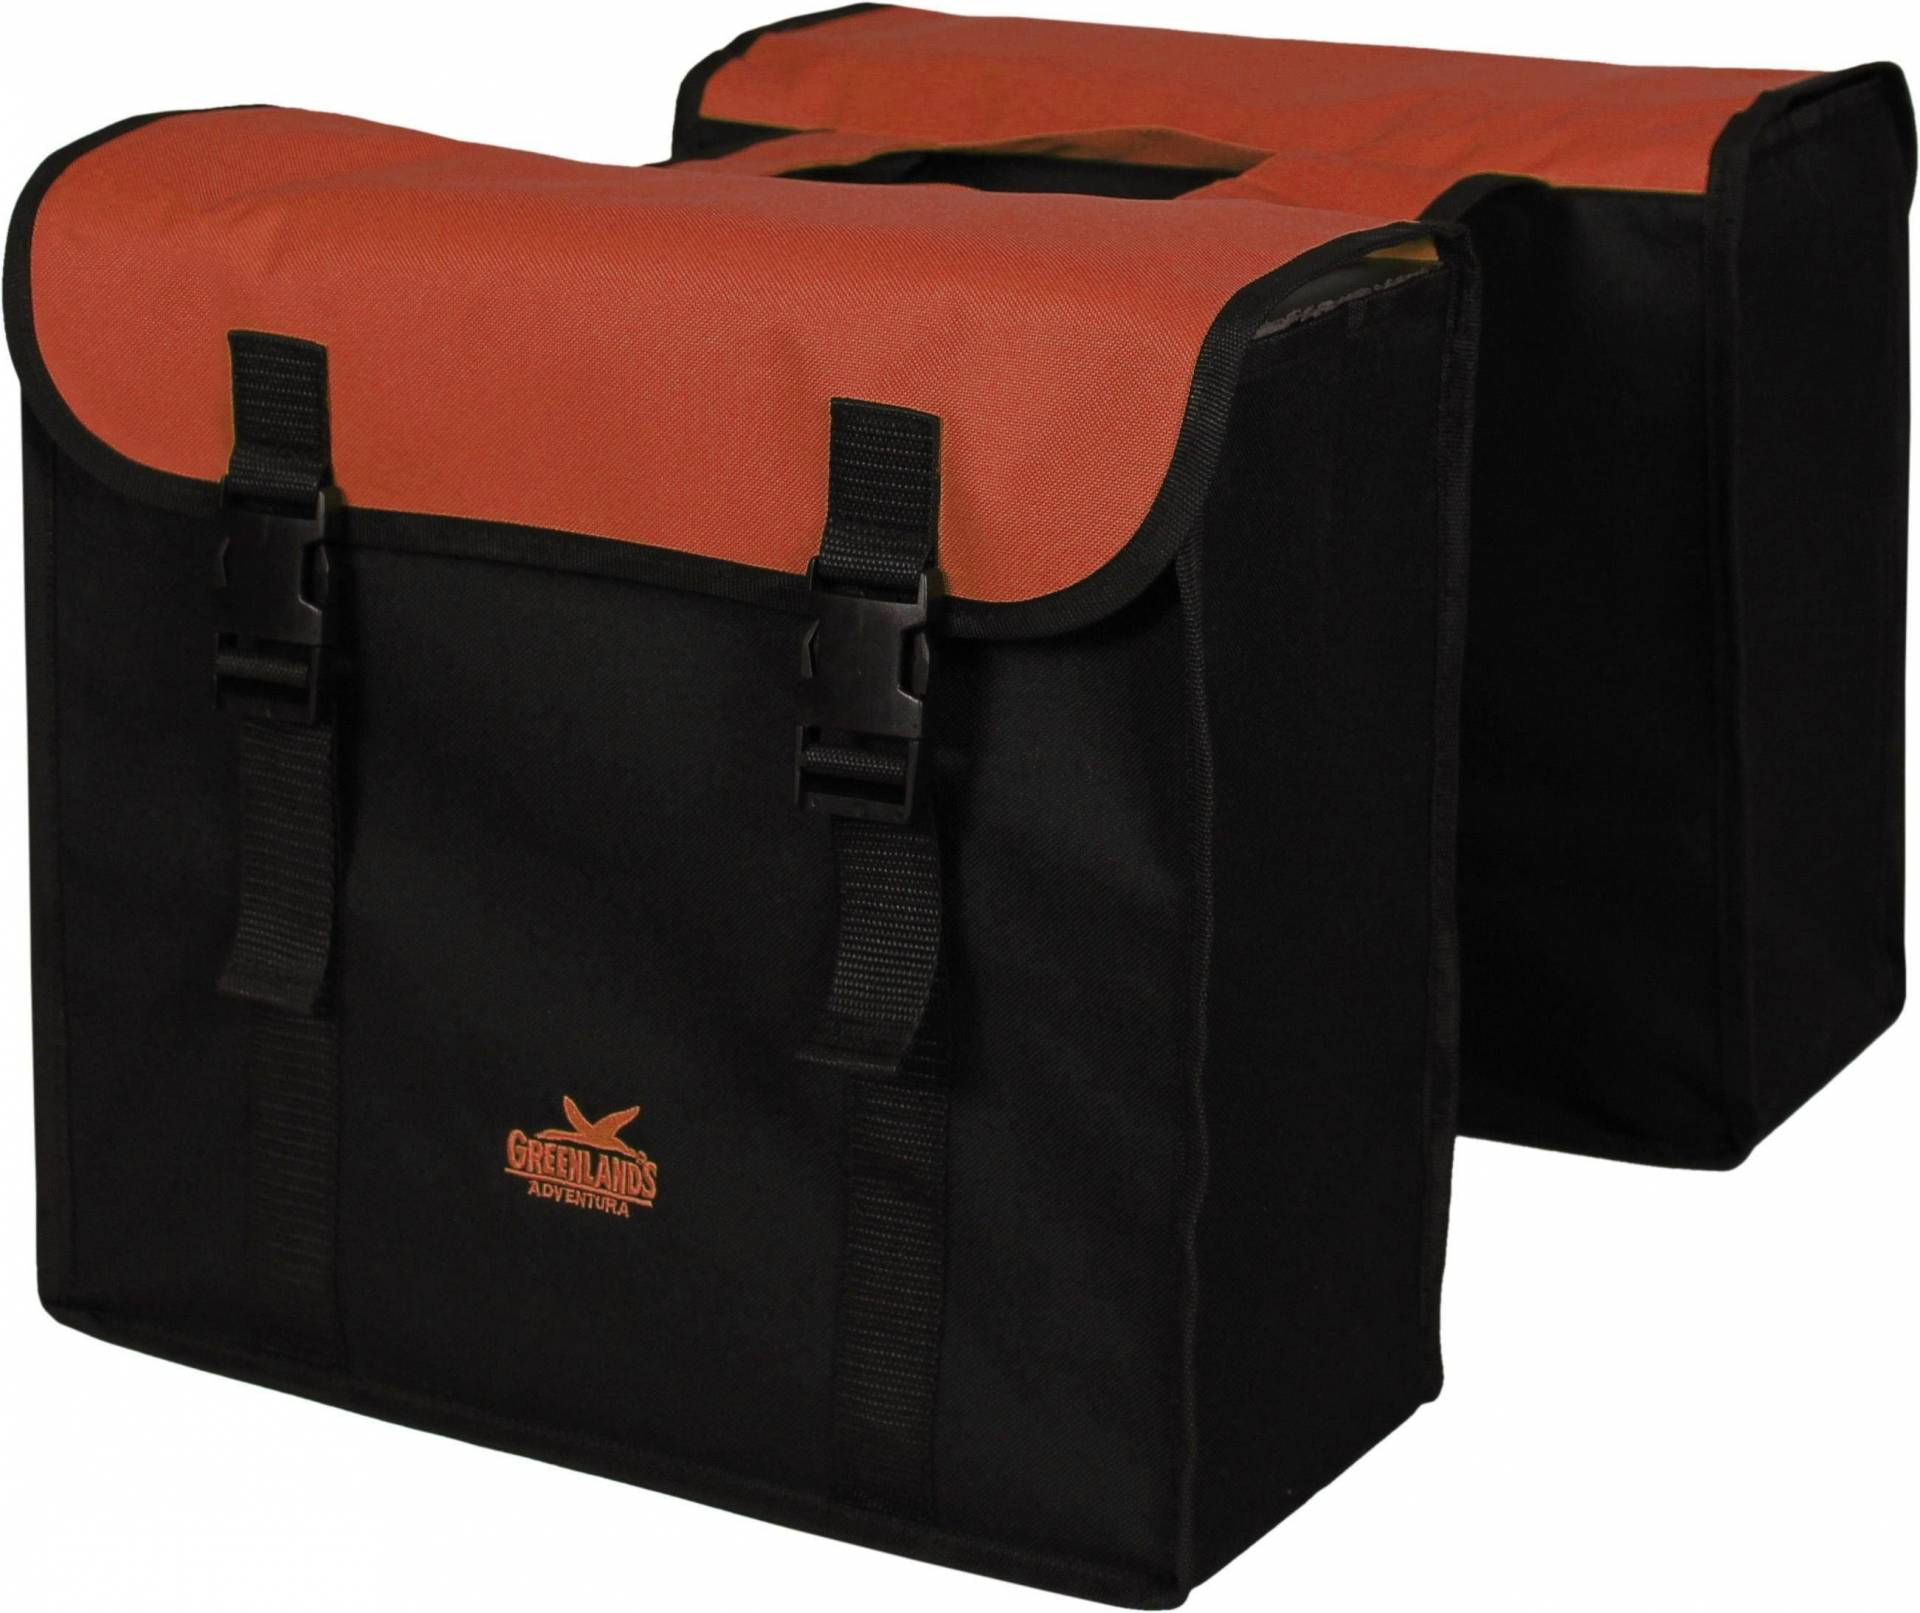 GREENLANDS BICYCLE BAGS Fahrradtasche Greenlands Doppel Fahrradtasche von Greenlands Bicycle Bags